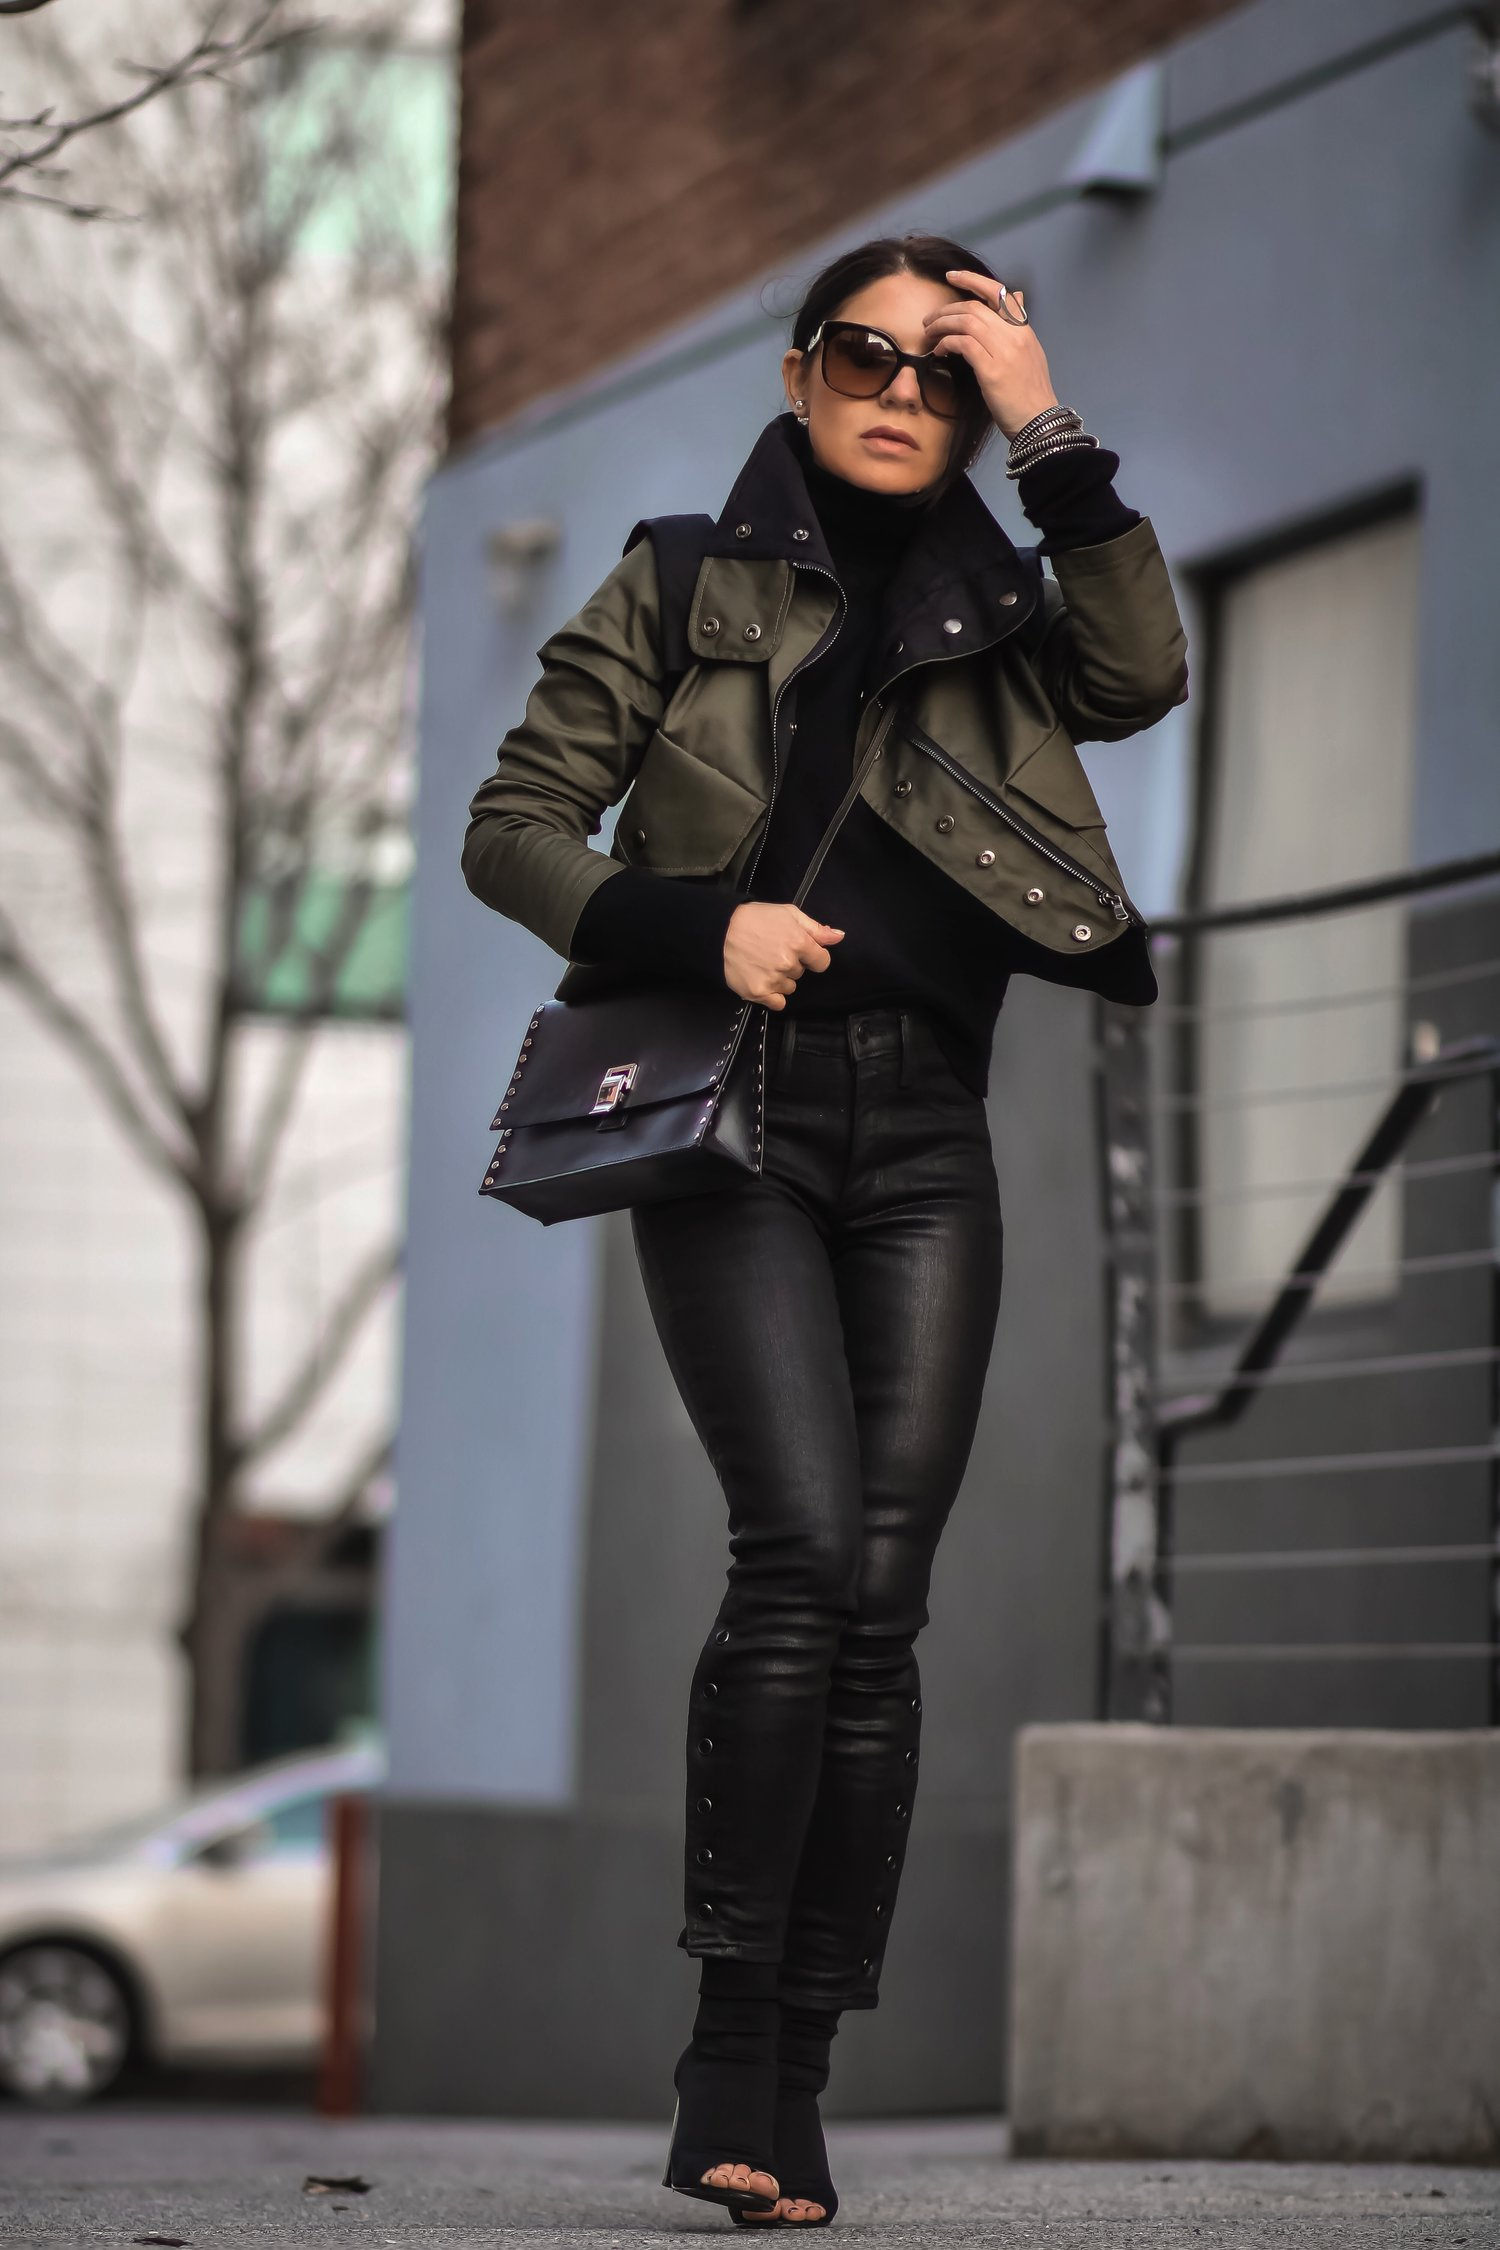 Isabel-Alexander-Clothia-jacket-coated-denim-street-shot-walking